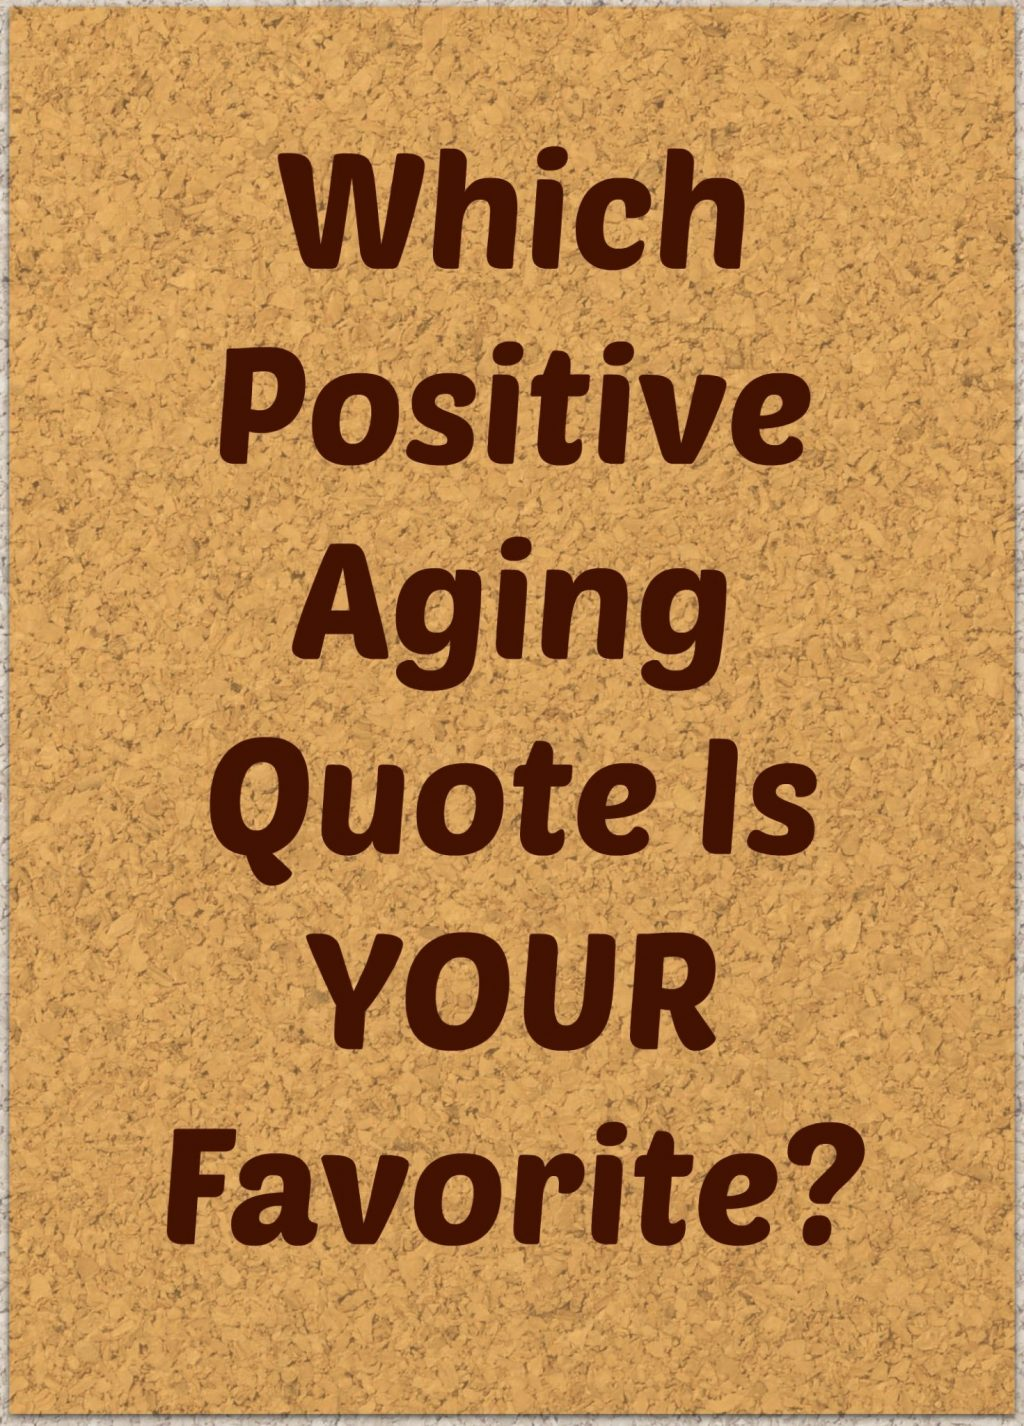 Thankful Wallpaper Quotes 50 Of The Best Positive Aging Quotes I Could Find